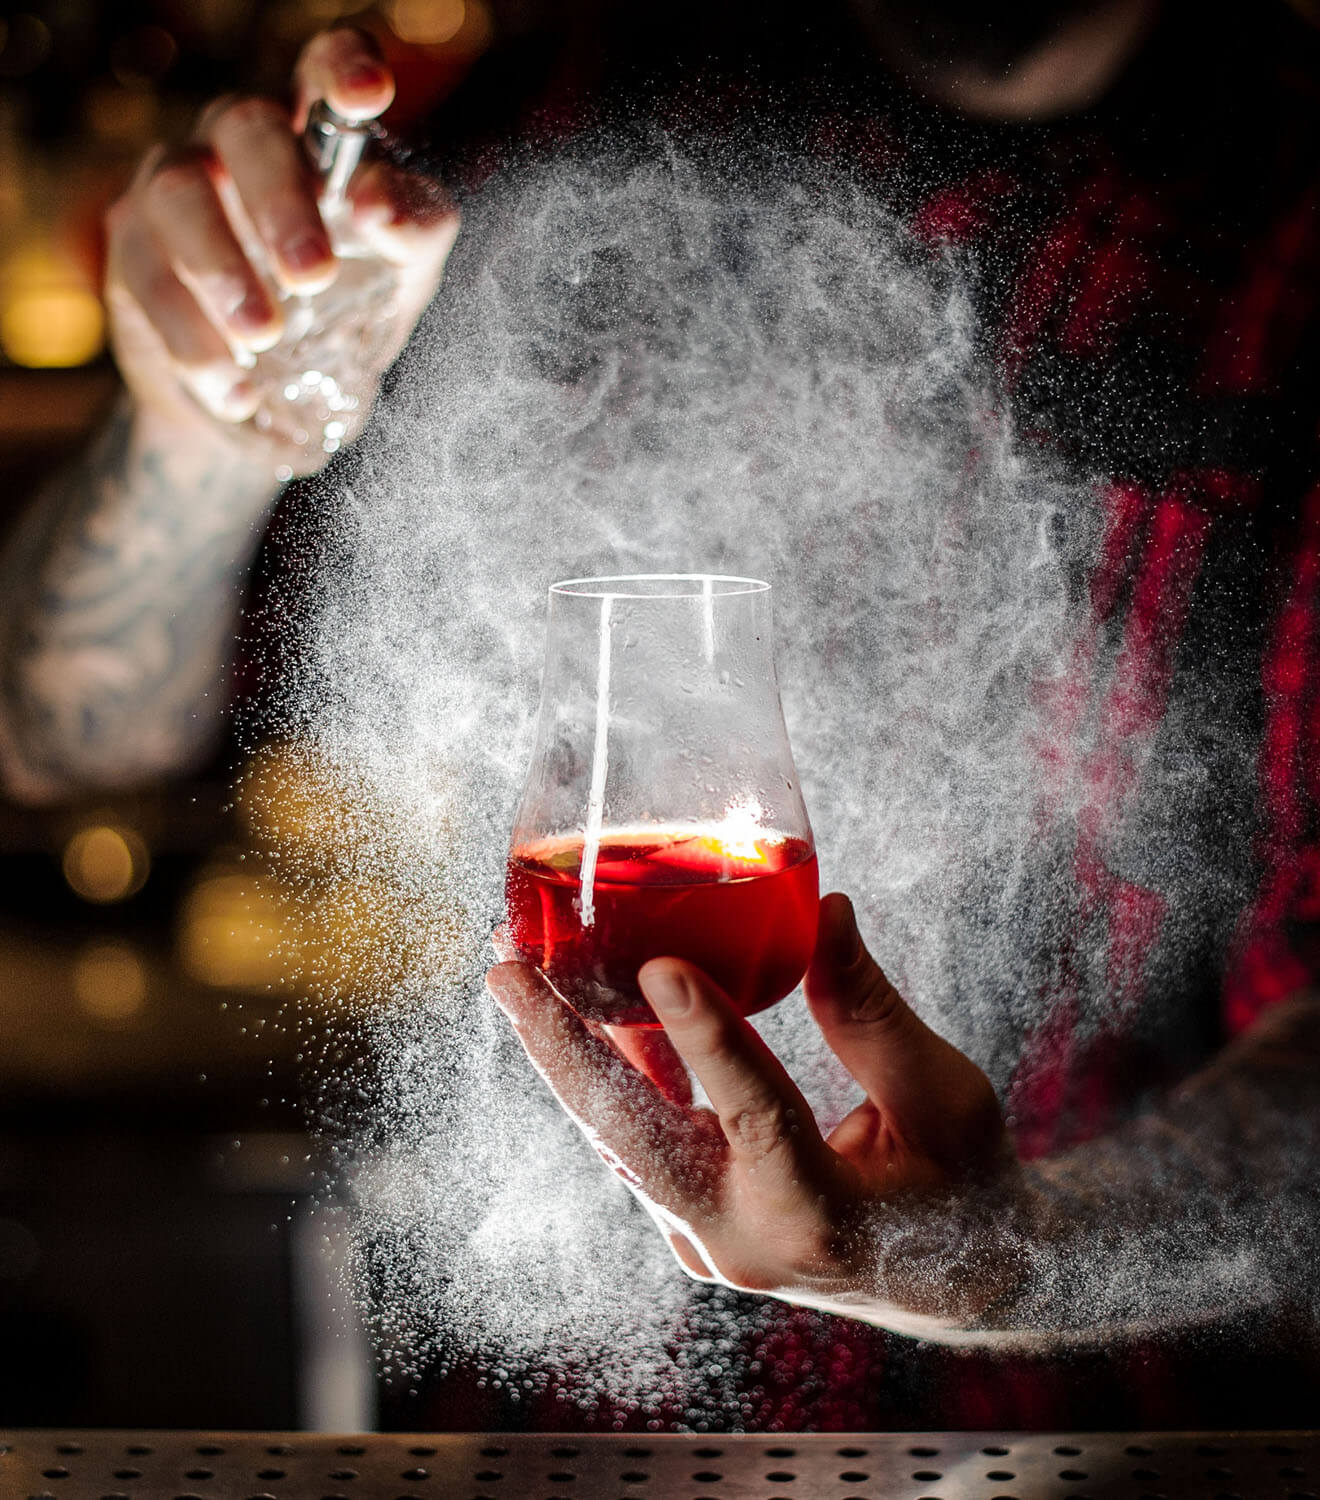 bartender spraying a sazerac cocktail